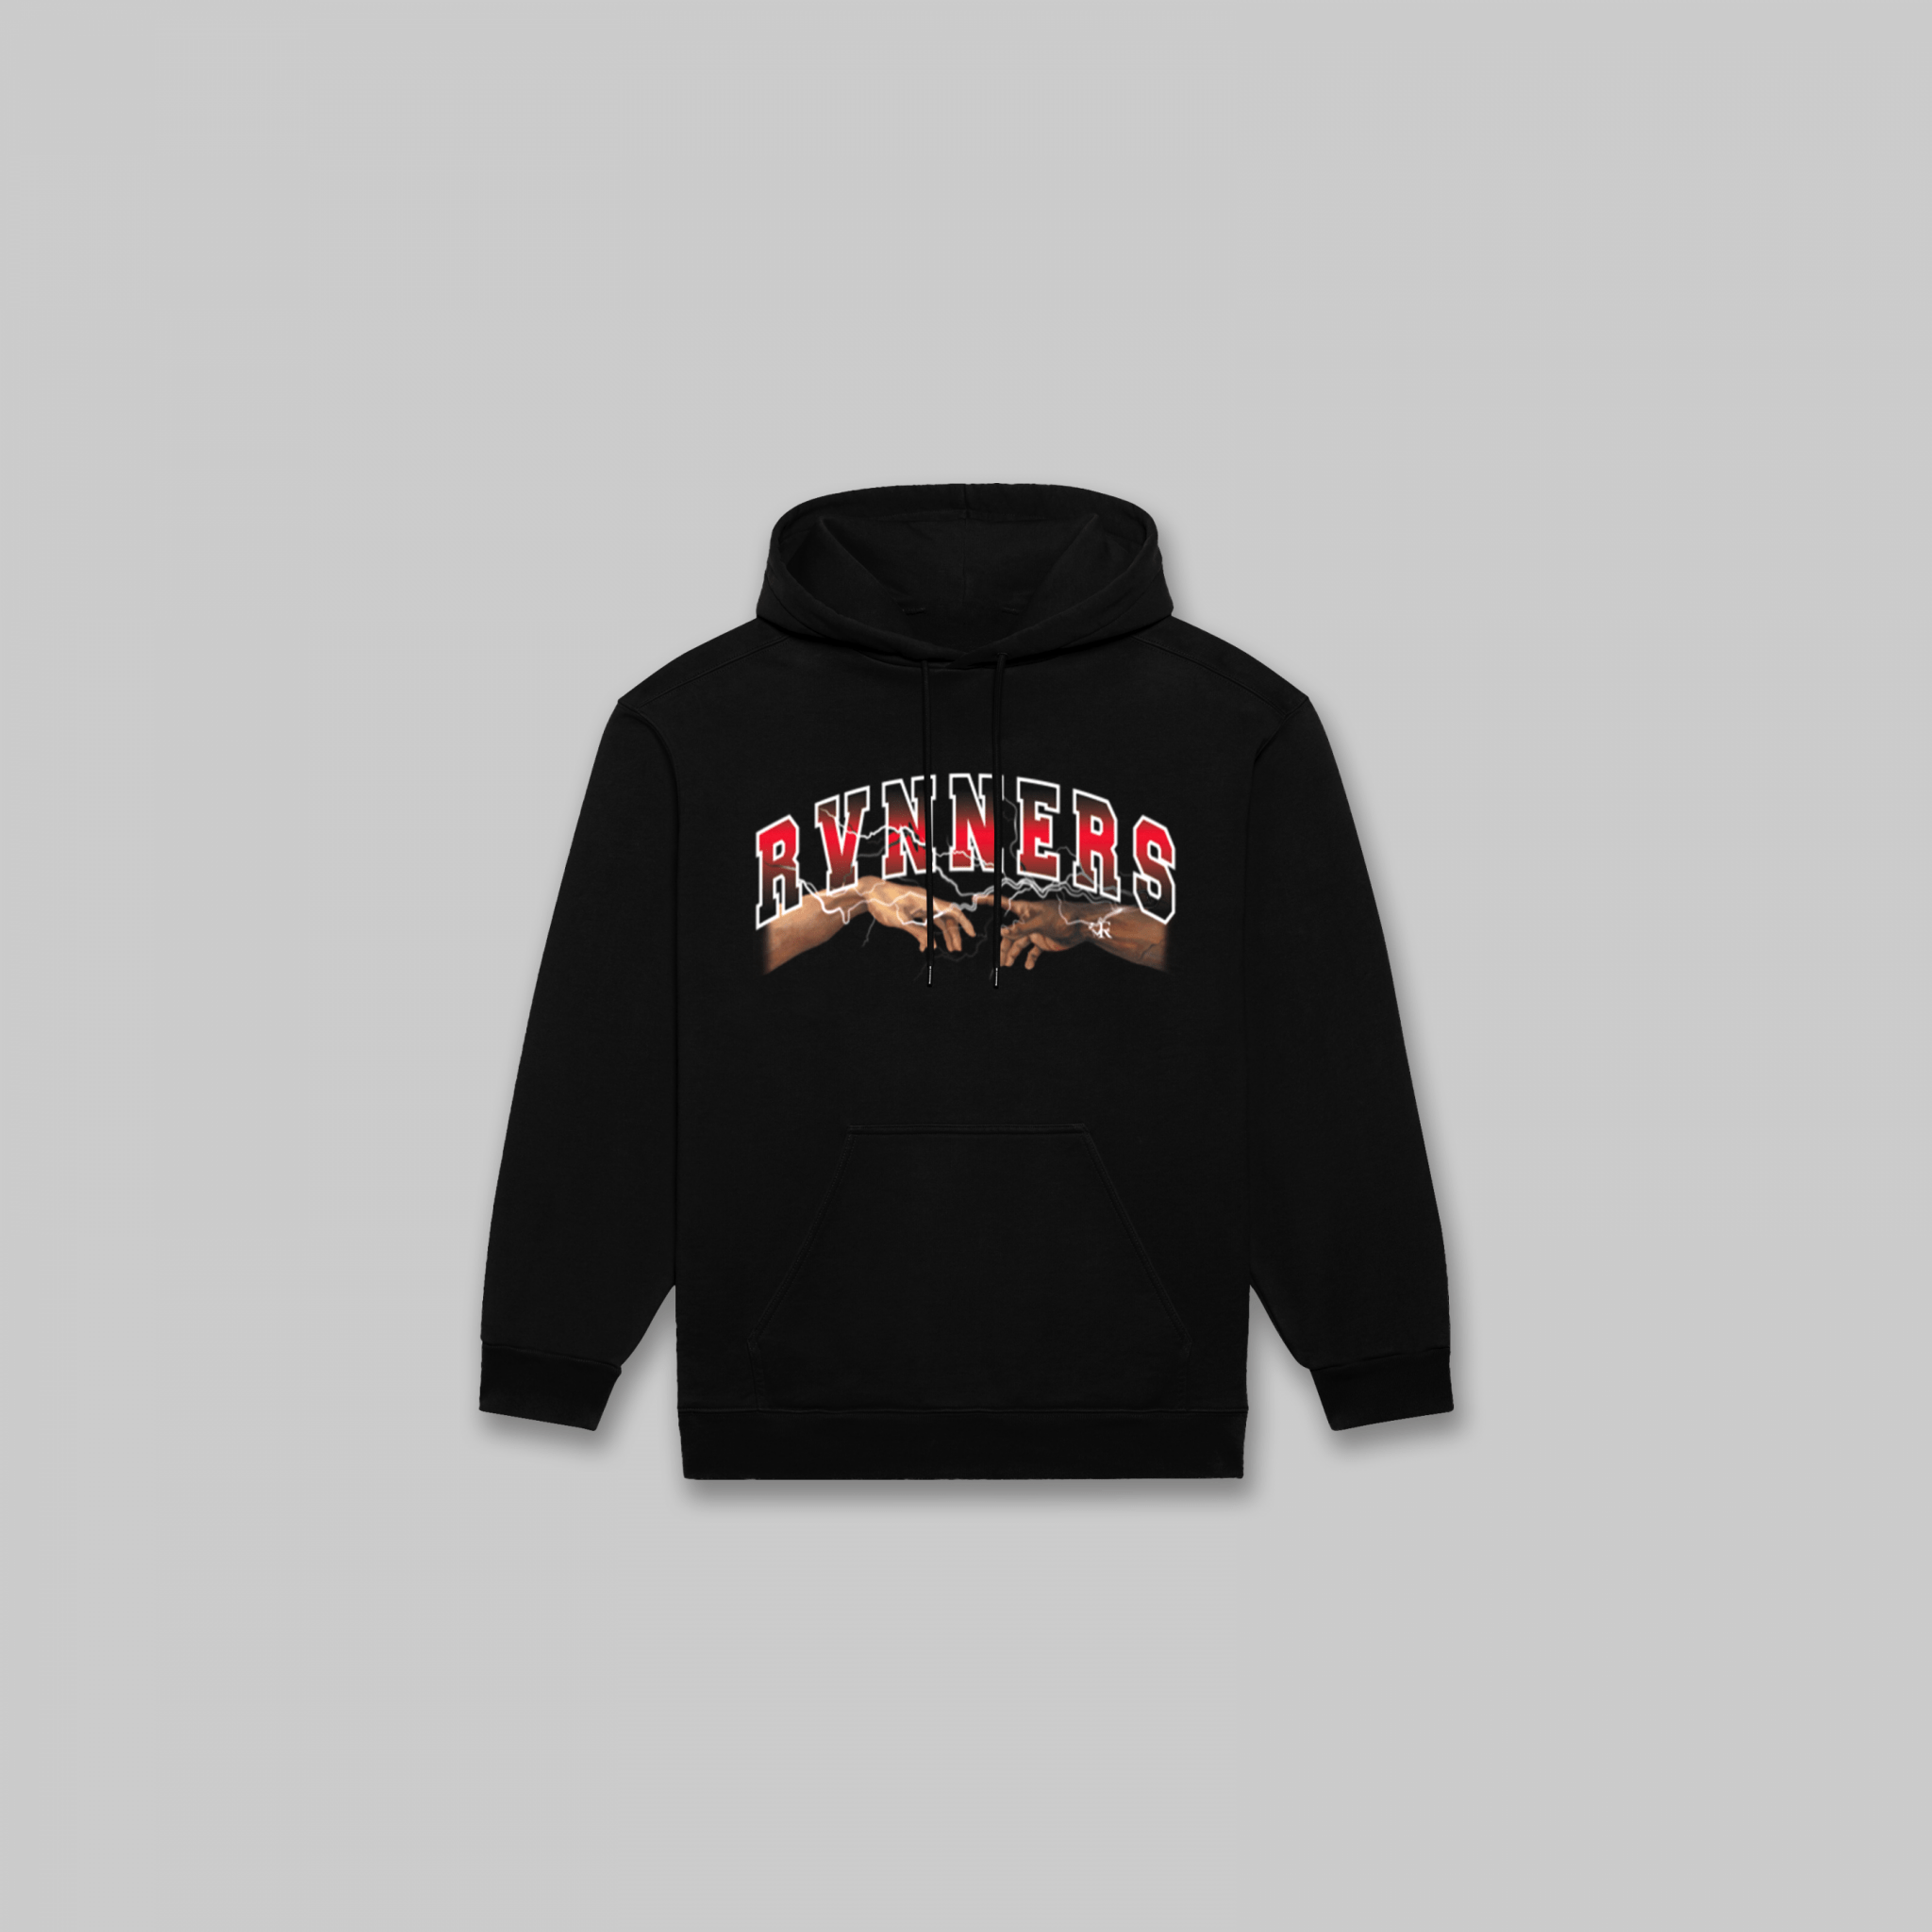 Frontrvnners Rvnners Red Hoodie